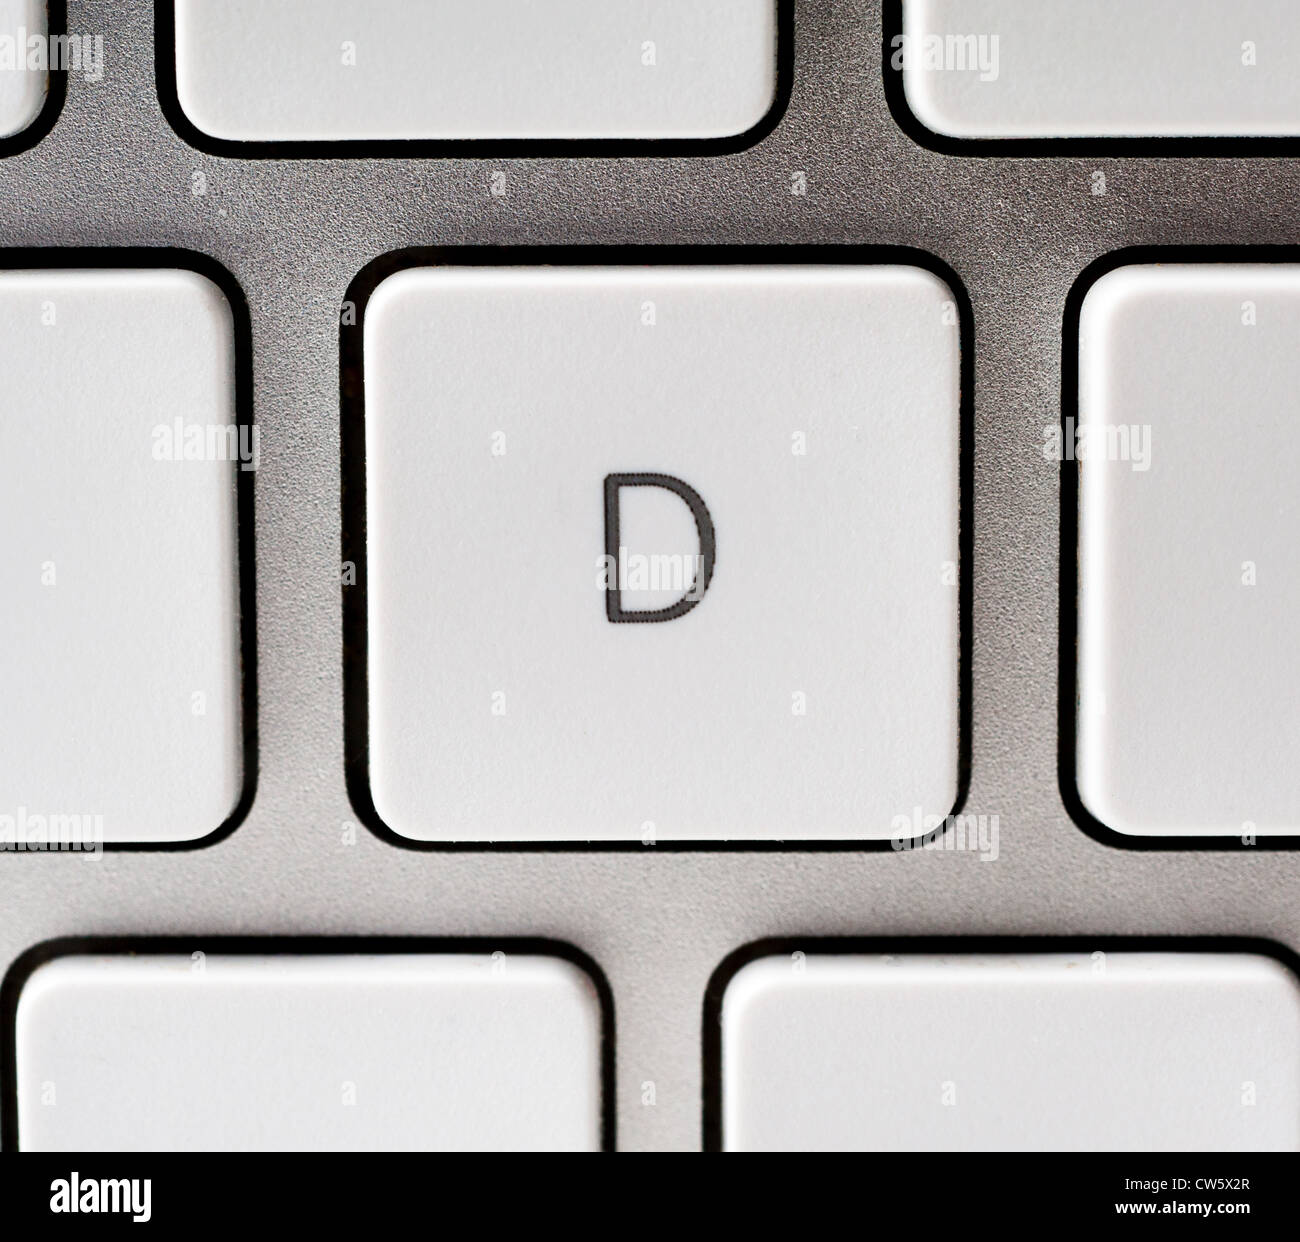 Letter D on an Apple keyboard - Stock Image